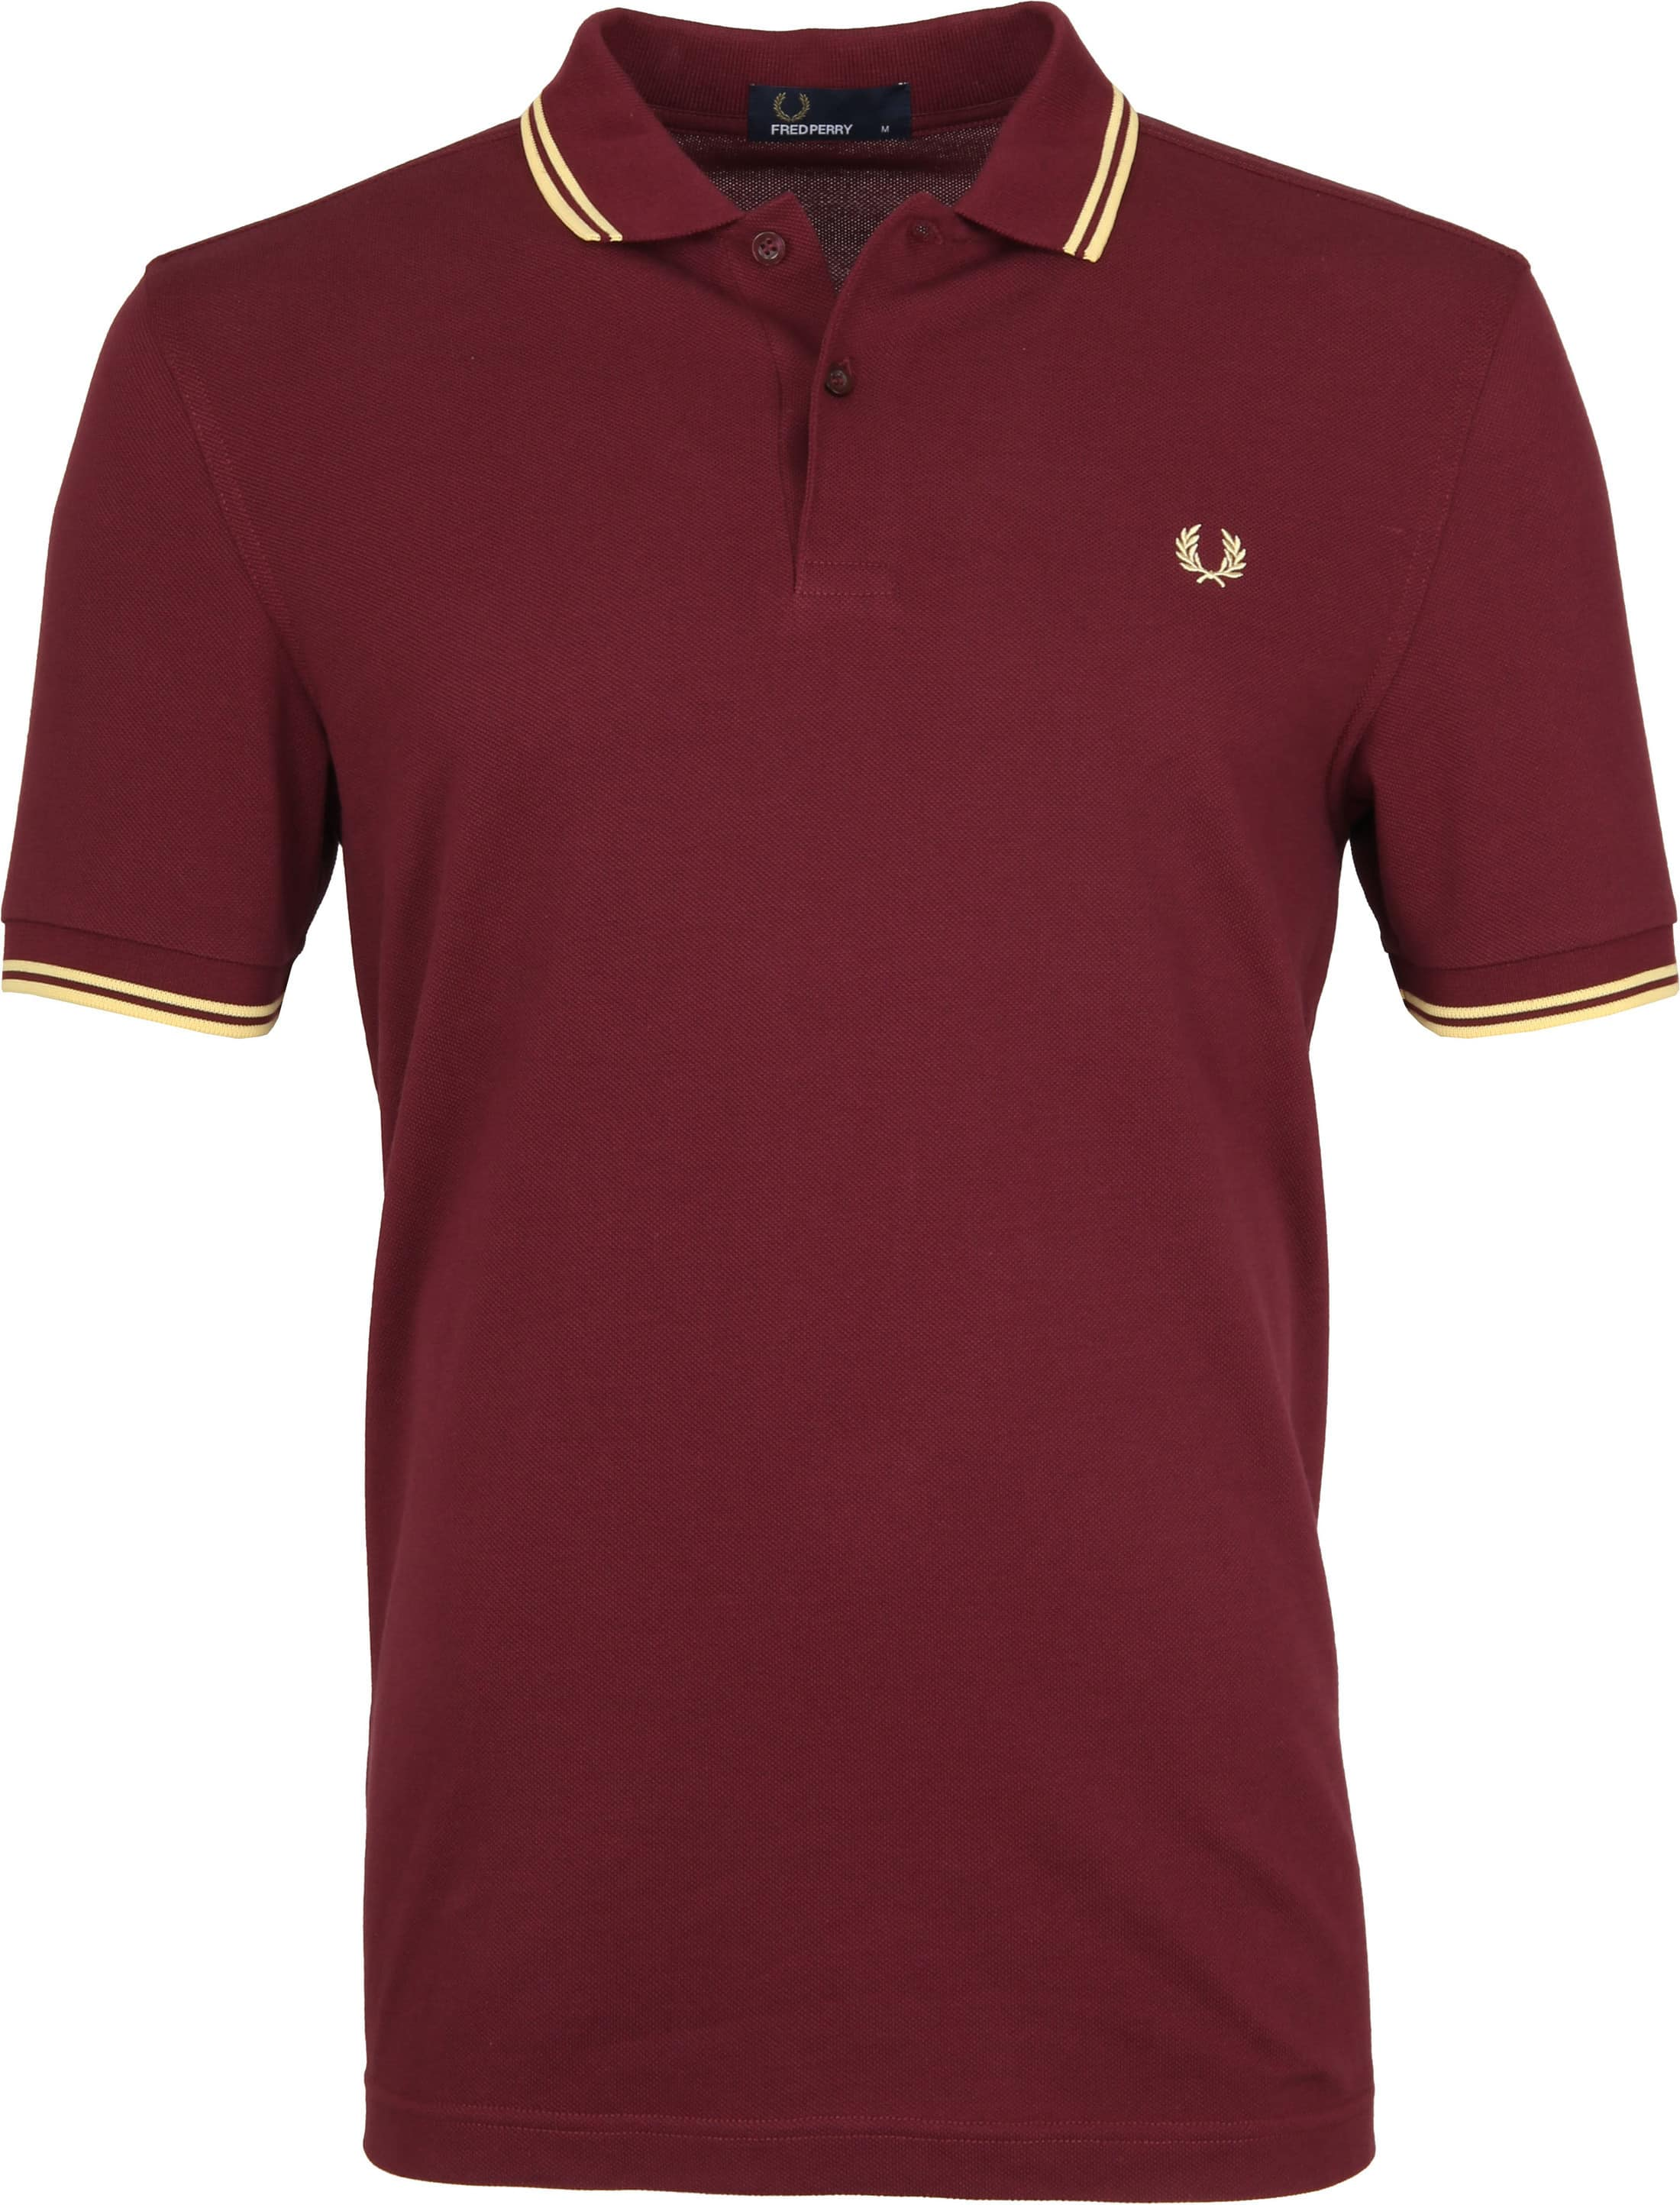 Fred Perry Poloshirt Bordeaux 472 foto 0